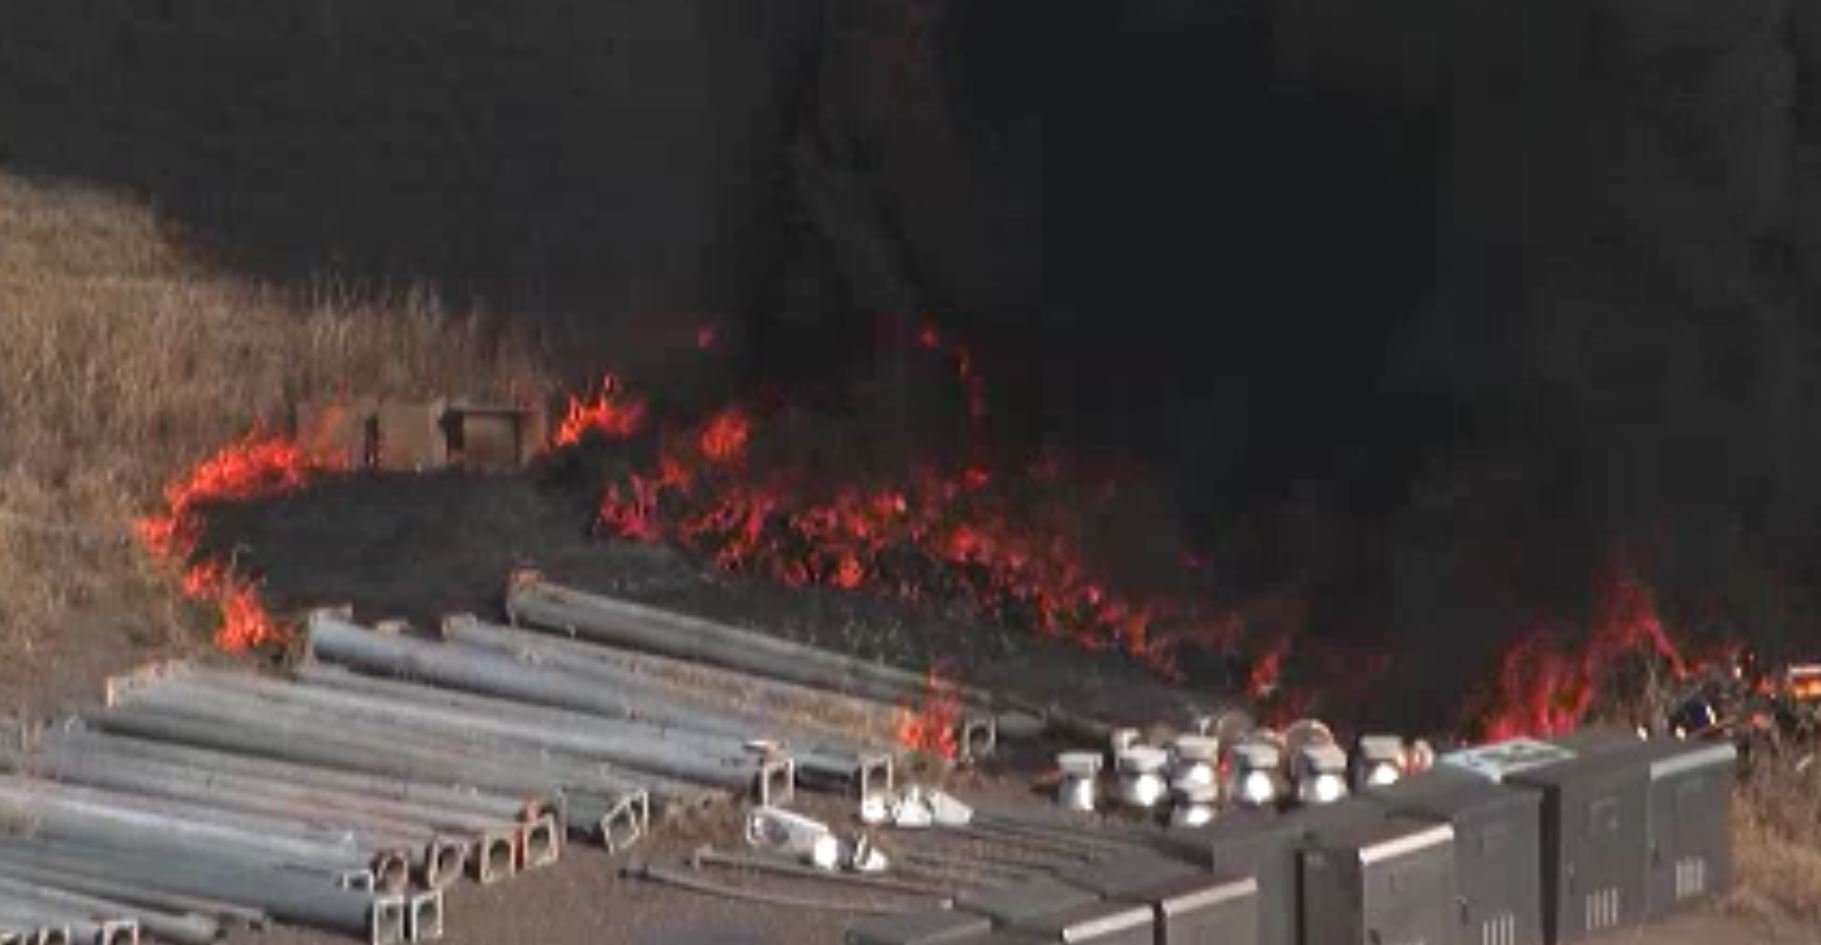 Fire at water treatment plant